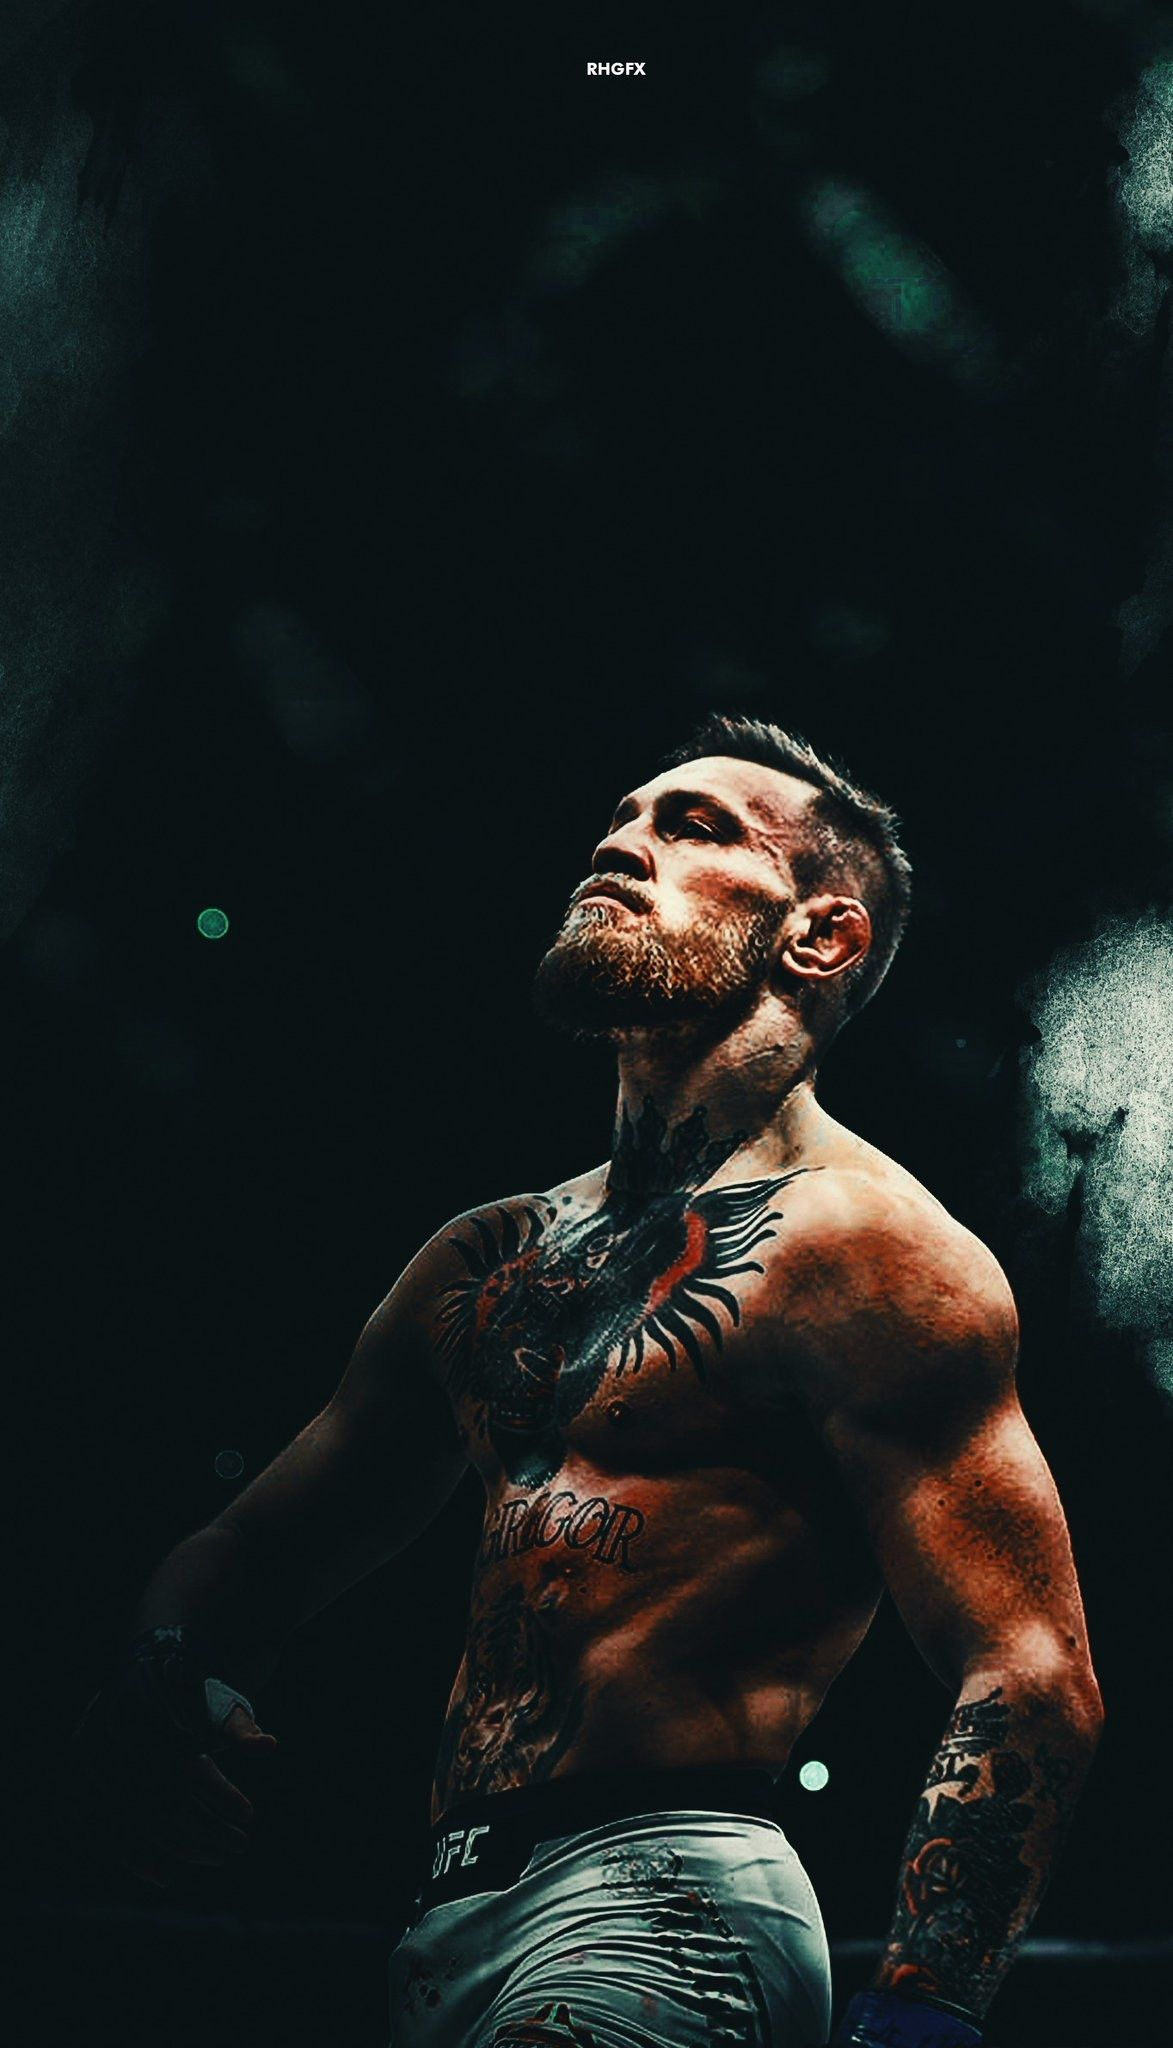 Conor Mcgregor Quotes Wallpaper Images Festival Wallpaper Conor Mcgregor Quotes Mcgregor Wallpapers Conor Mcgregor